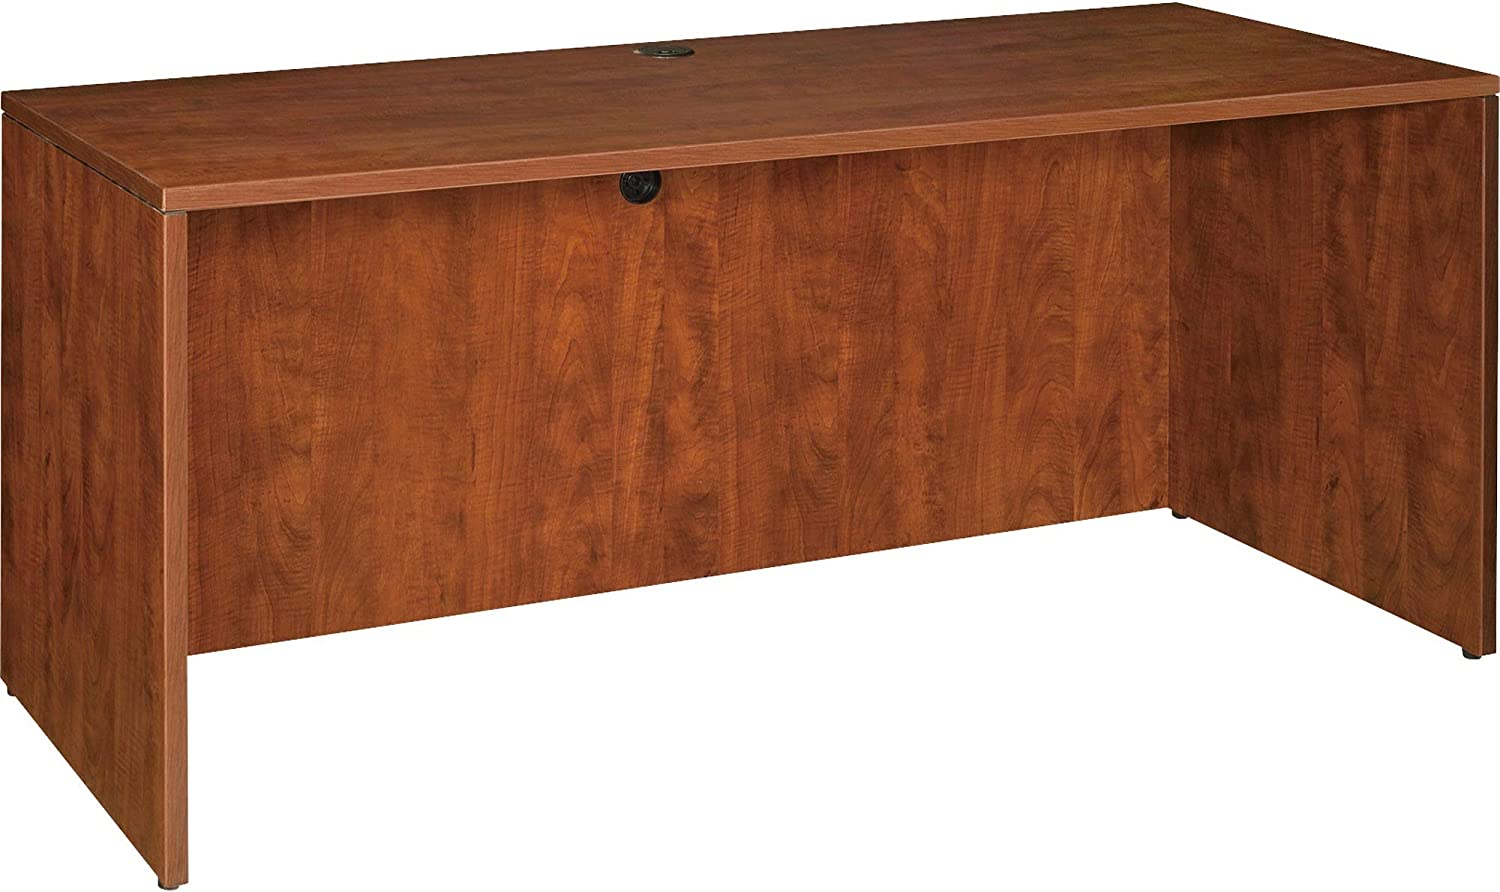 Lorell Essentials Credenza Seasonal Wrap Introduction Shell - 72quot; 24quot; x Width Purchase Depth